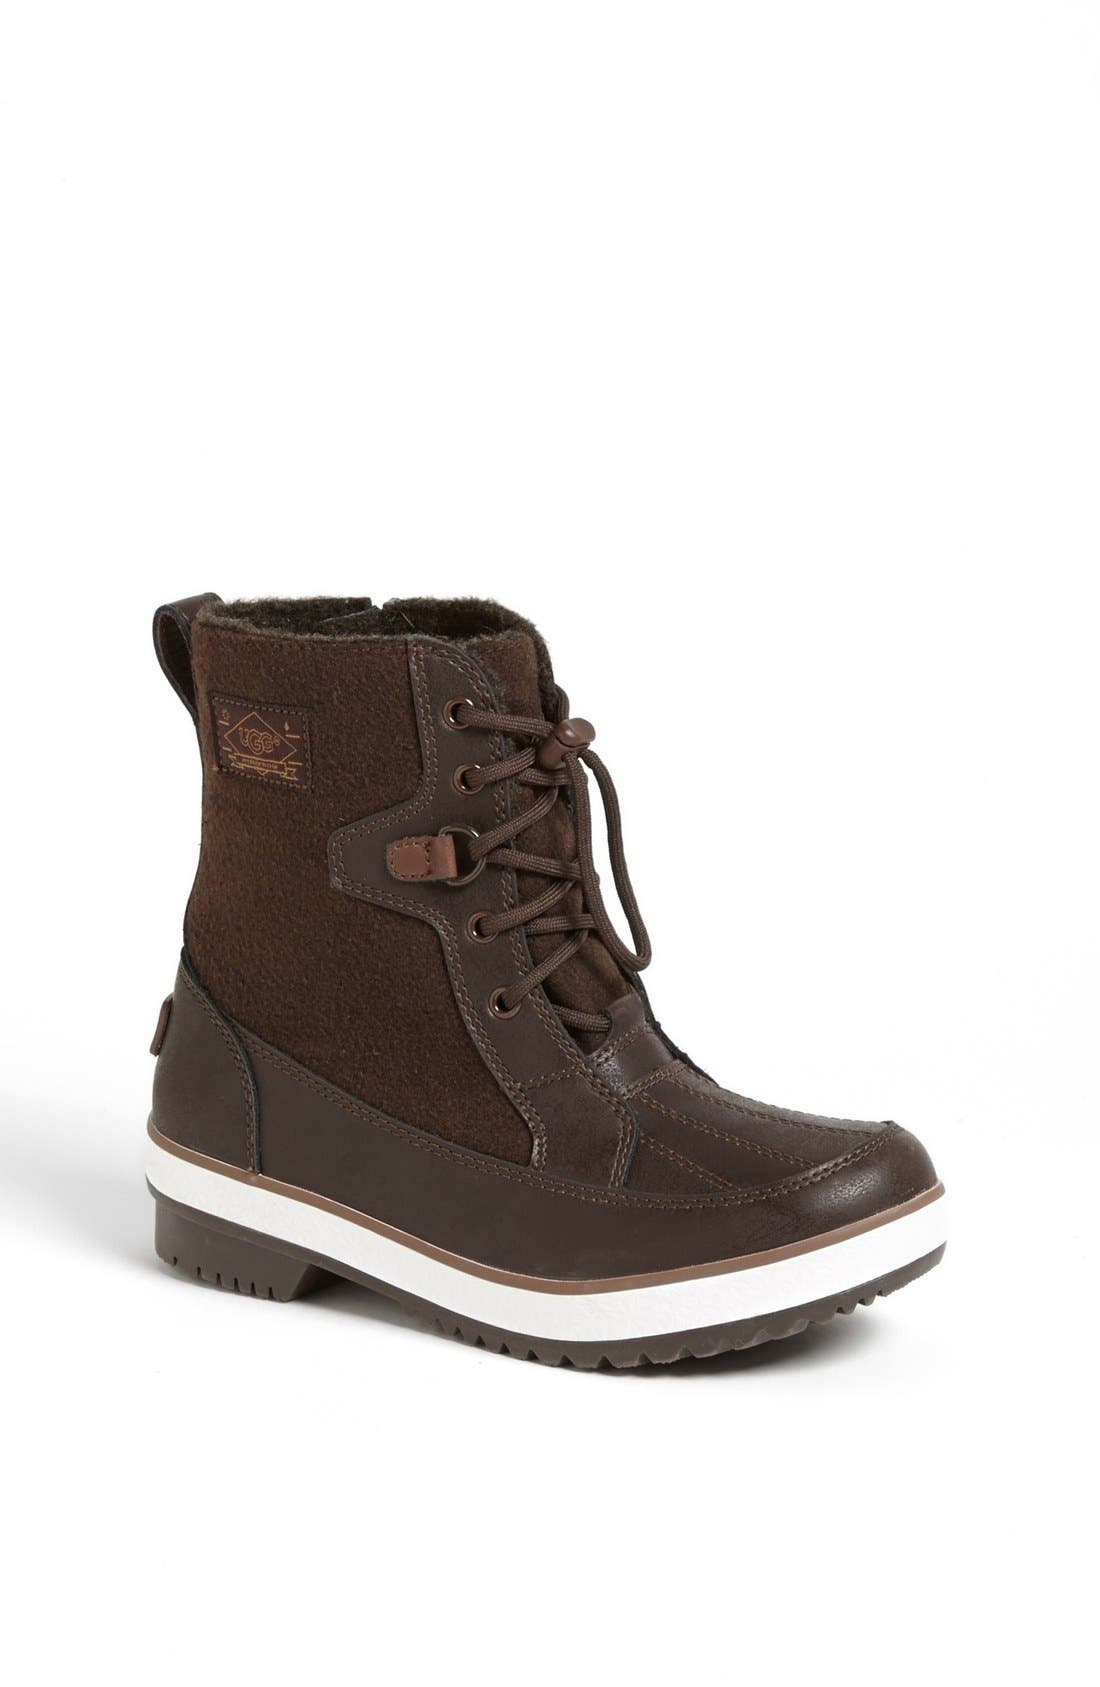 Main Image - UGG® Australia 'Cabiro' Waterproof Boot (Little Kid & Big Kid)